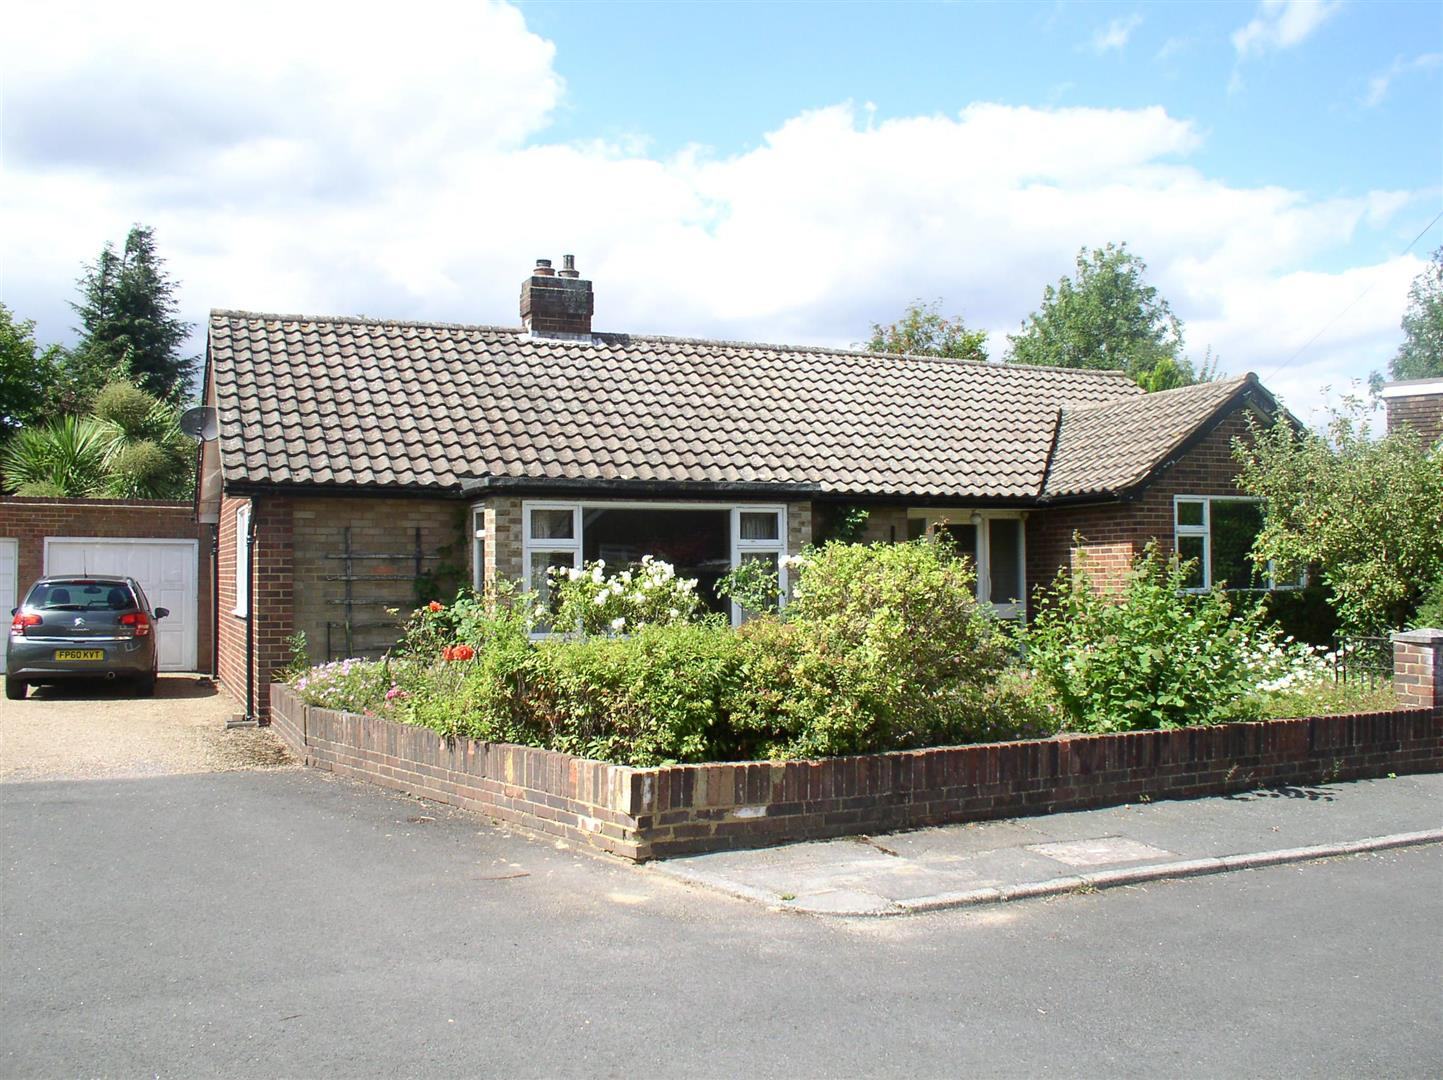 2 Bedrooms Detached Bungalow for sale in Crutchfield Lane, Walton-On-Thames